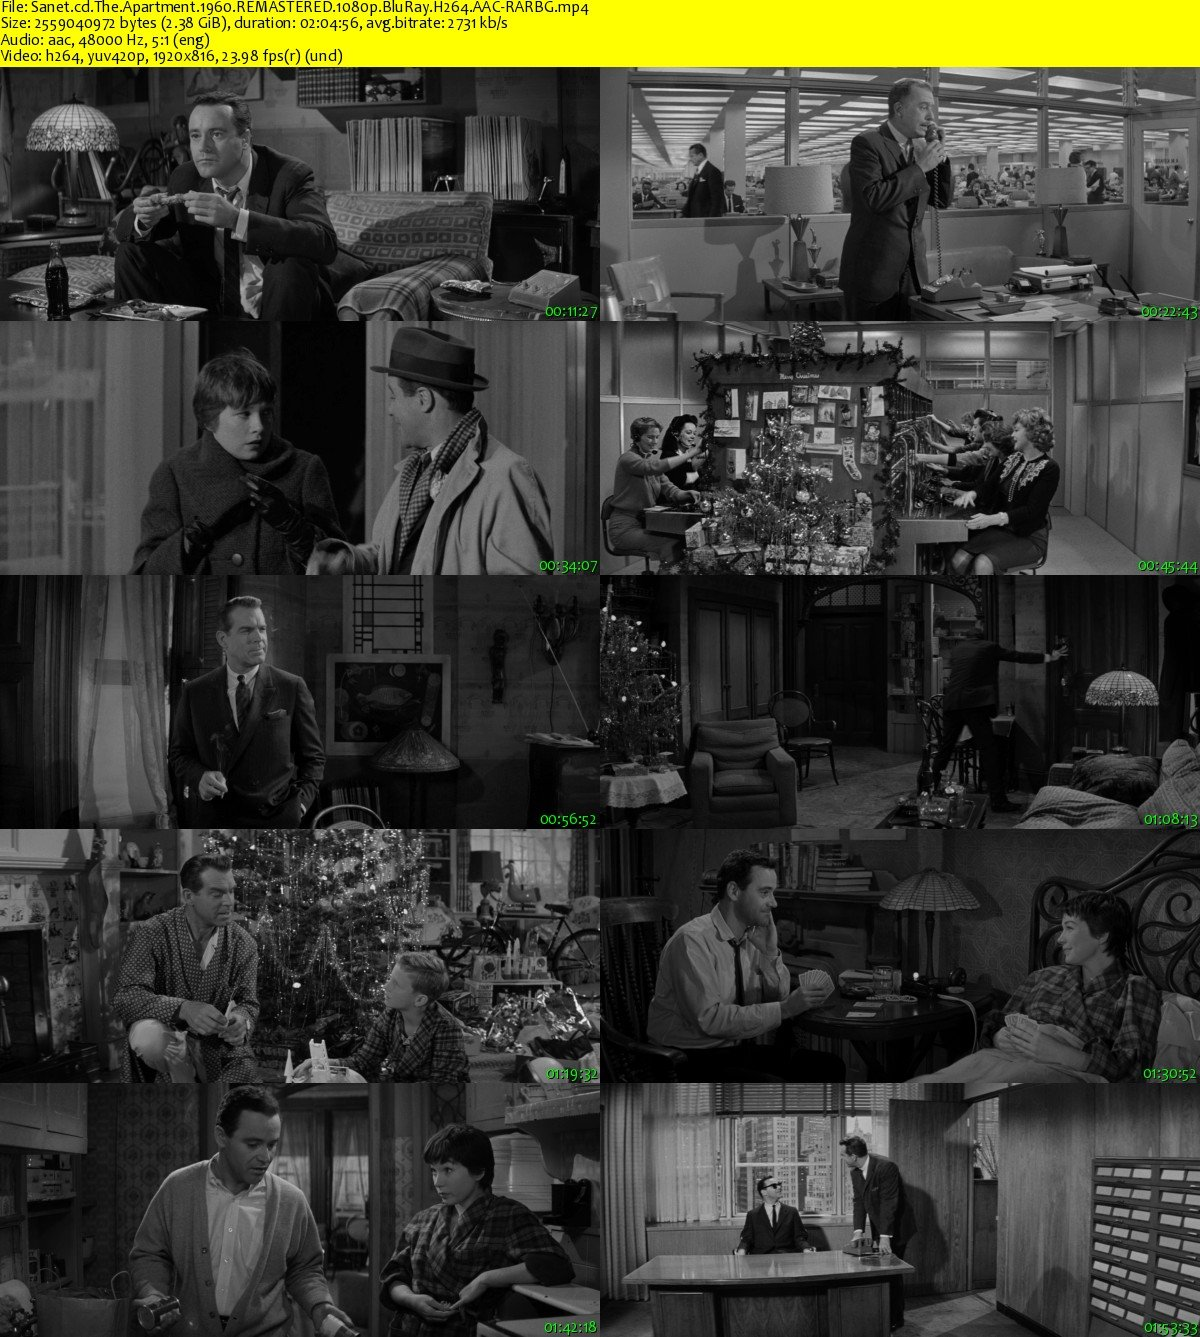 Imdb The Apartment: Download The Apartment 1960 REMASTERED 1080p BluRay H264